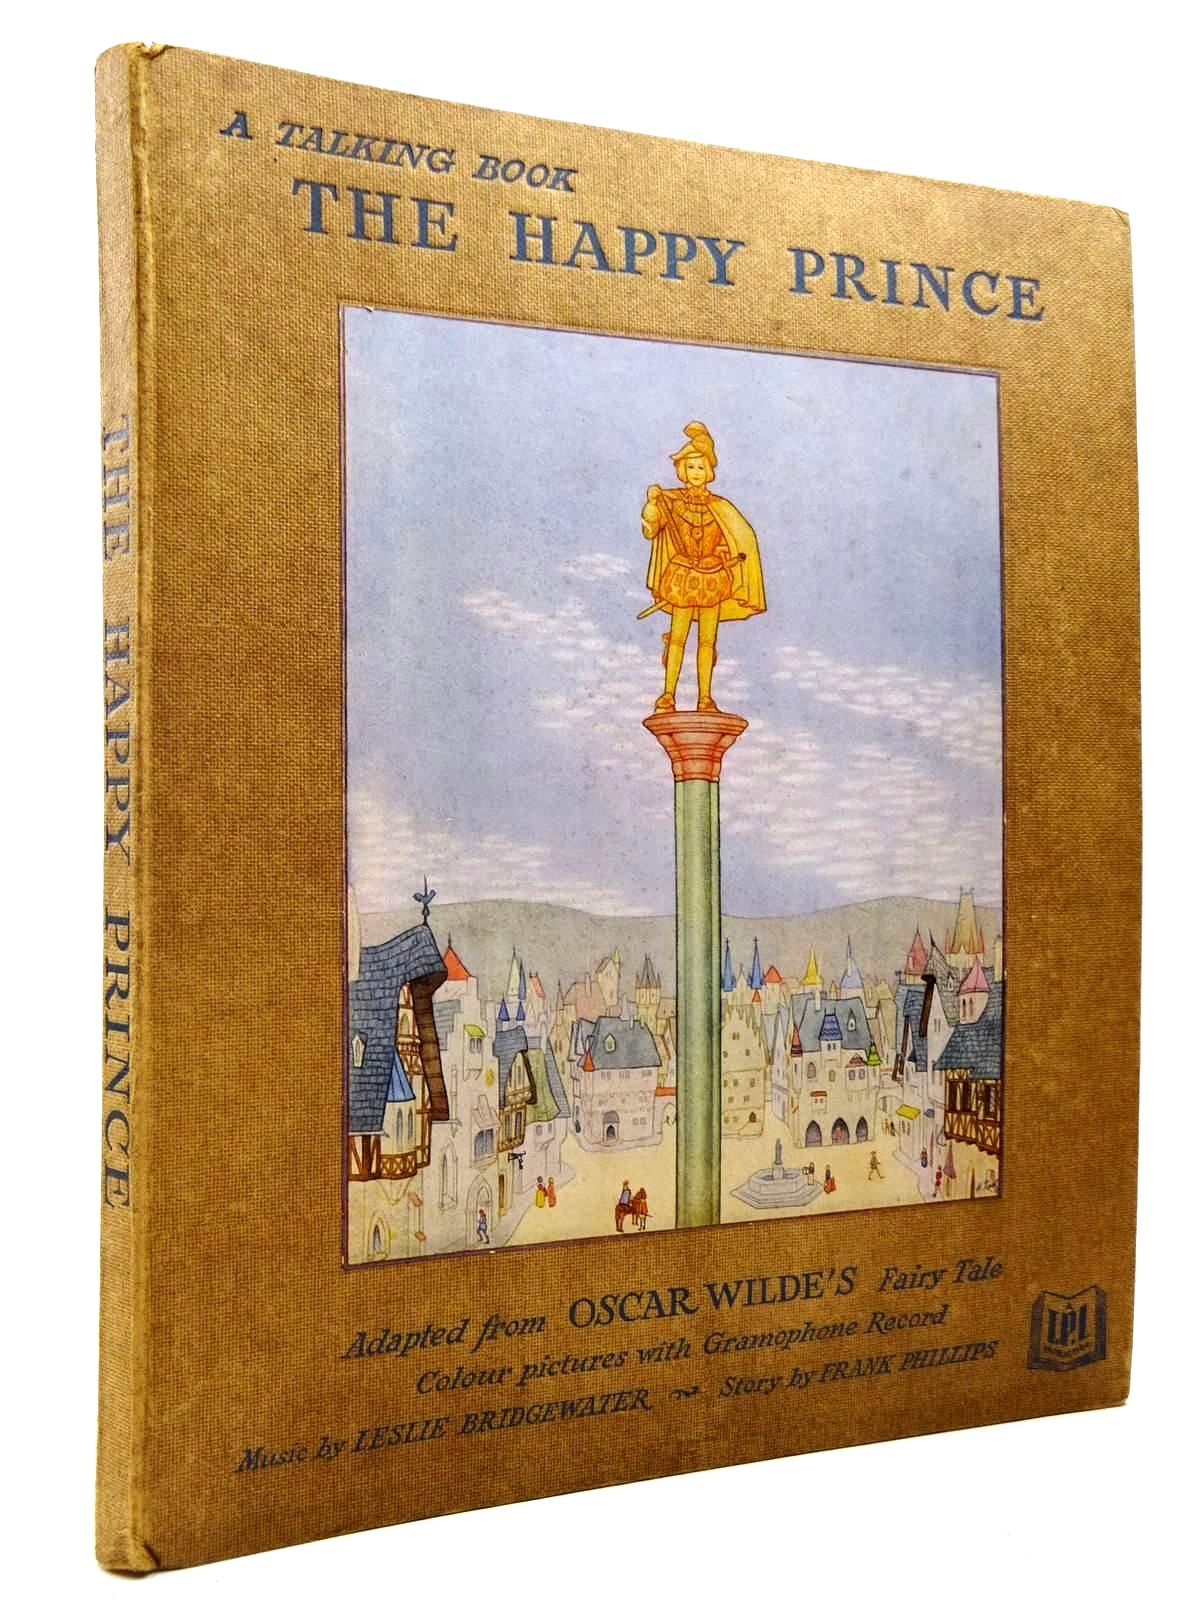 Photo of THE HAPPY PRINCE A TALKING BOOK written by Wilde, Oscar<br />Lake, Minnie illustrated by Paul, H. published by Horace Marshall &amp; Son Ltd. (STOCK CODE: 2130567)  for sale by Stella & Rose's Books